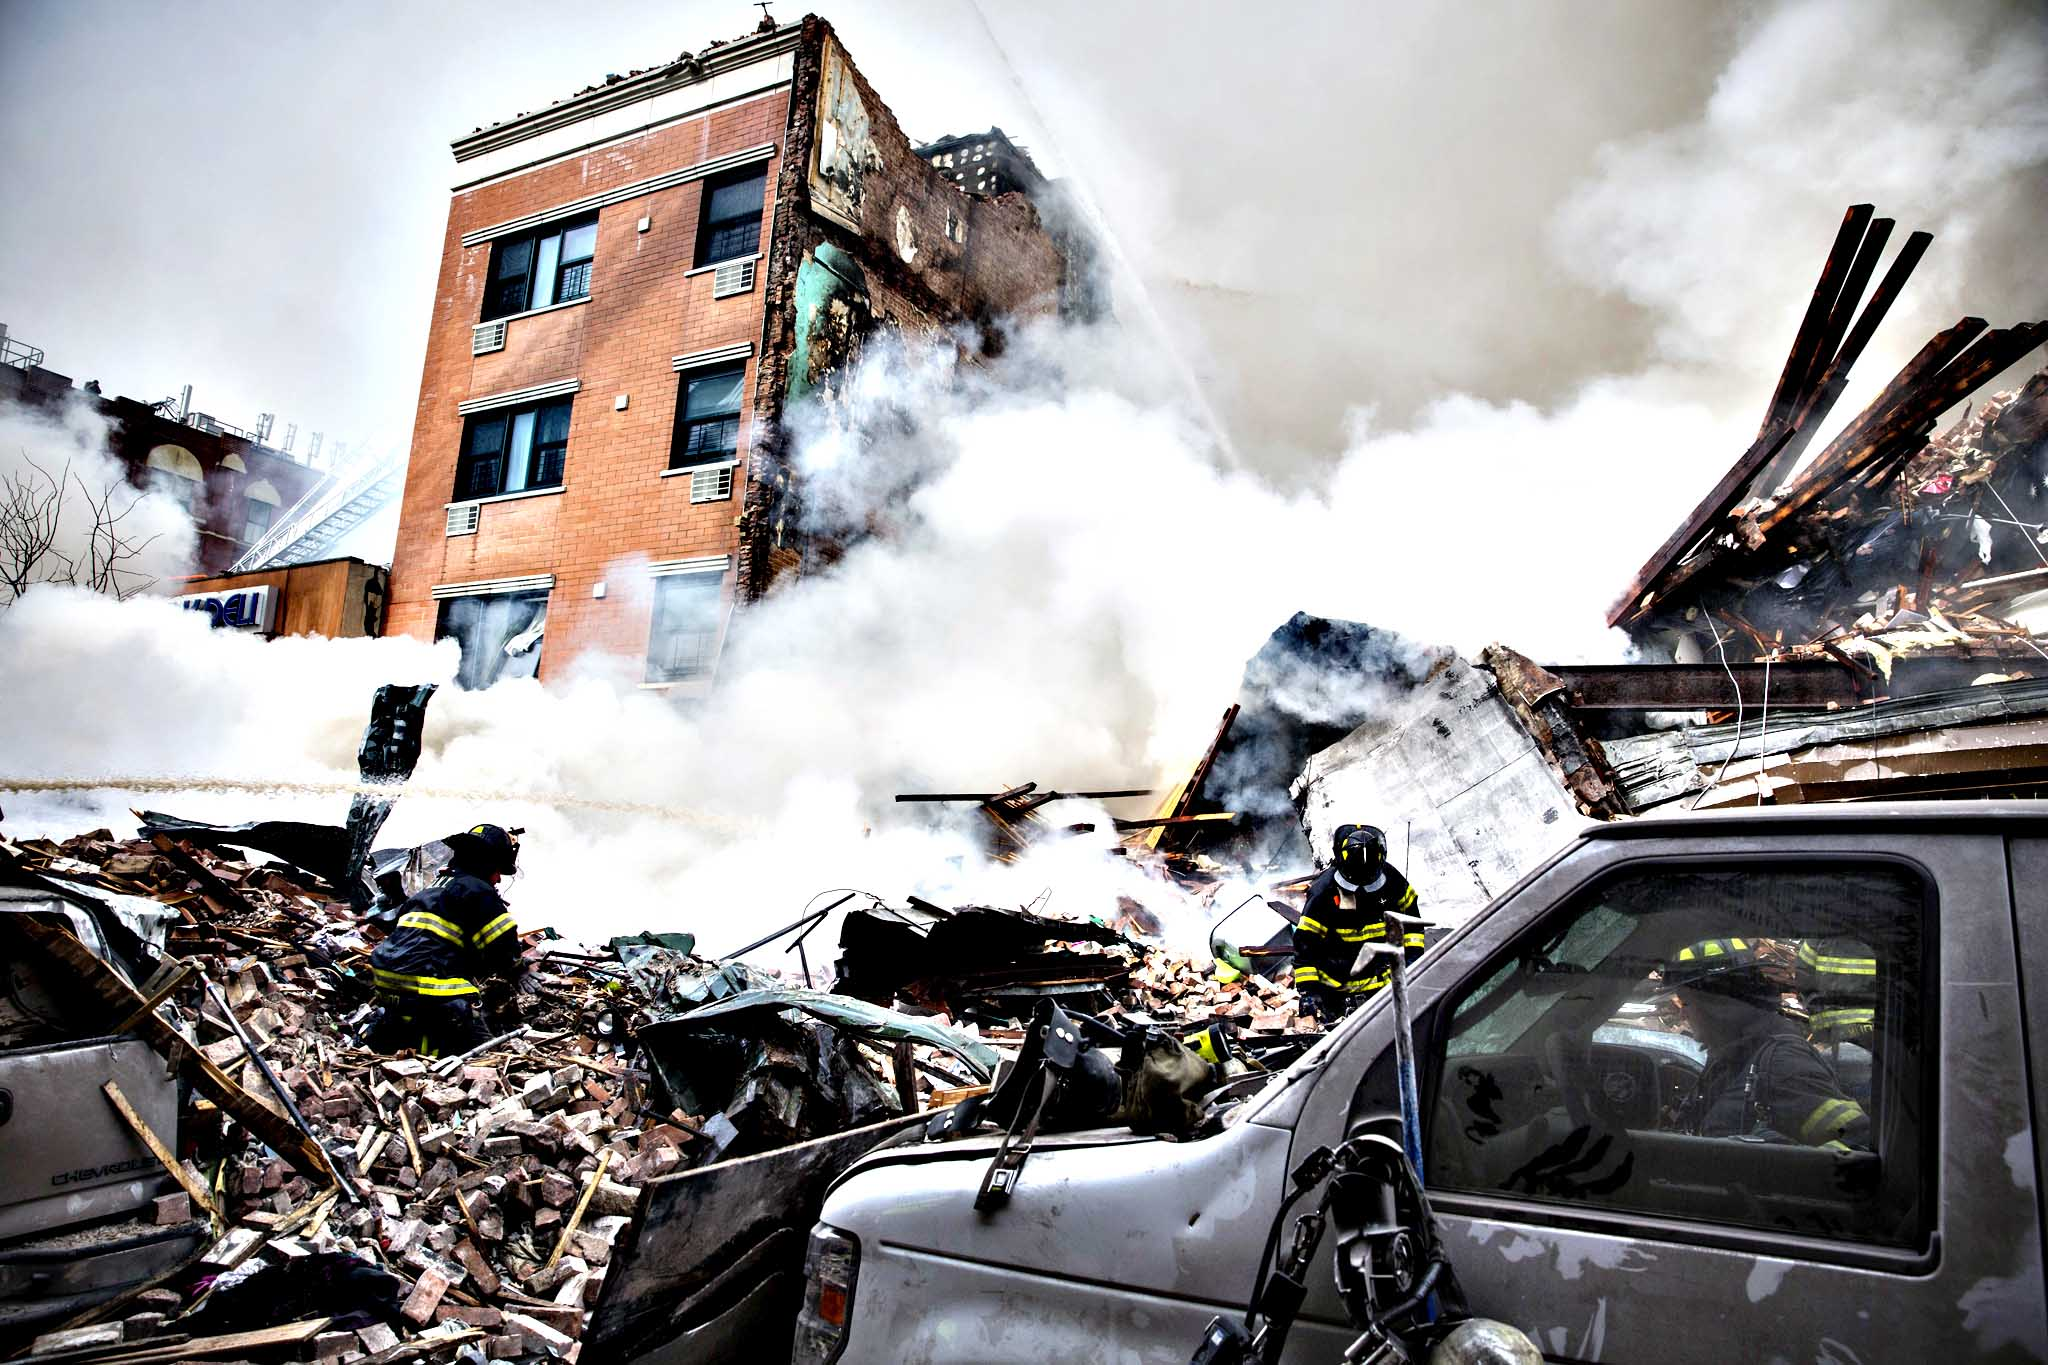 Heavy smoke pours from the debris as the Fire Department of New York (FDNY) responds to a 5-alarm fire and building collapse at 1646 Park Ave in the Harlem neighborhood of Manhattan March 12, 2014 in New York City. Reports of an explosion were heard before the collapse of two multiple-dwelling buildings that left at least 11 injured.